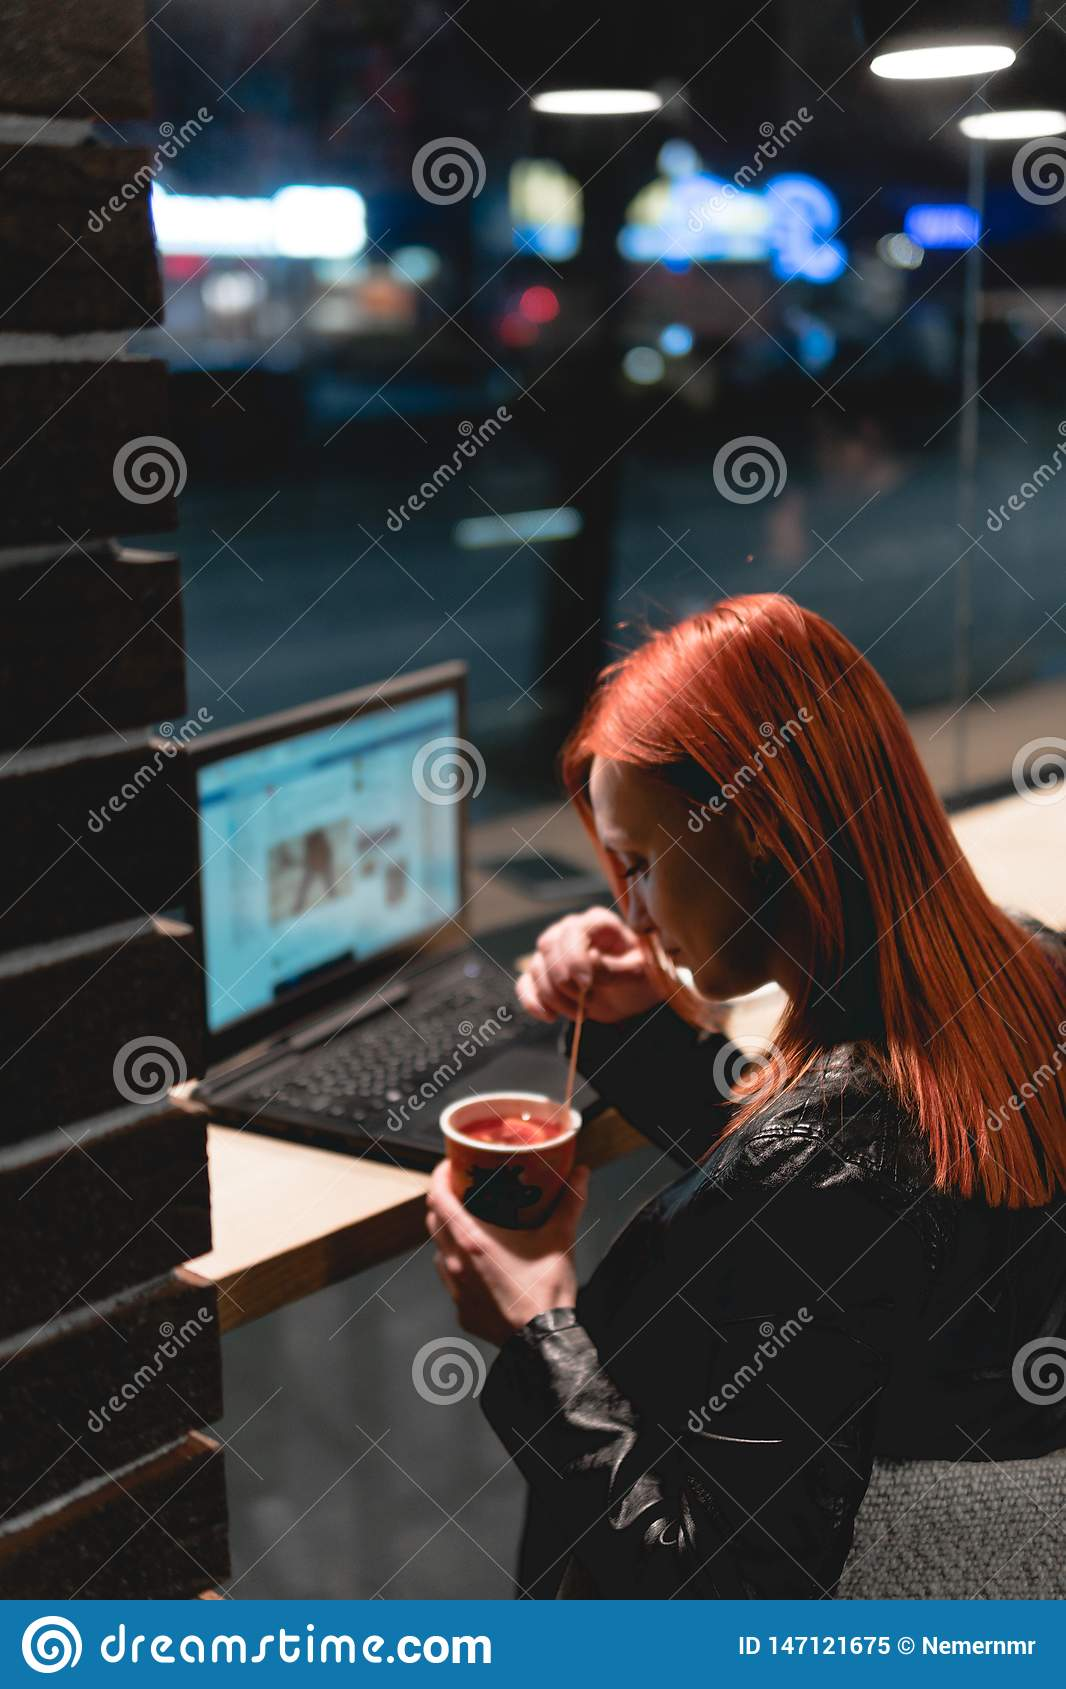 Businesswoman, girl working on laptop in cafe, smartphone, pen, use computer. Freelancer works remotely. Online marketing,